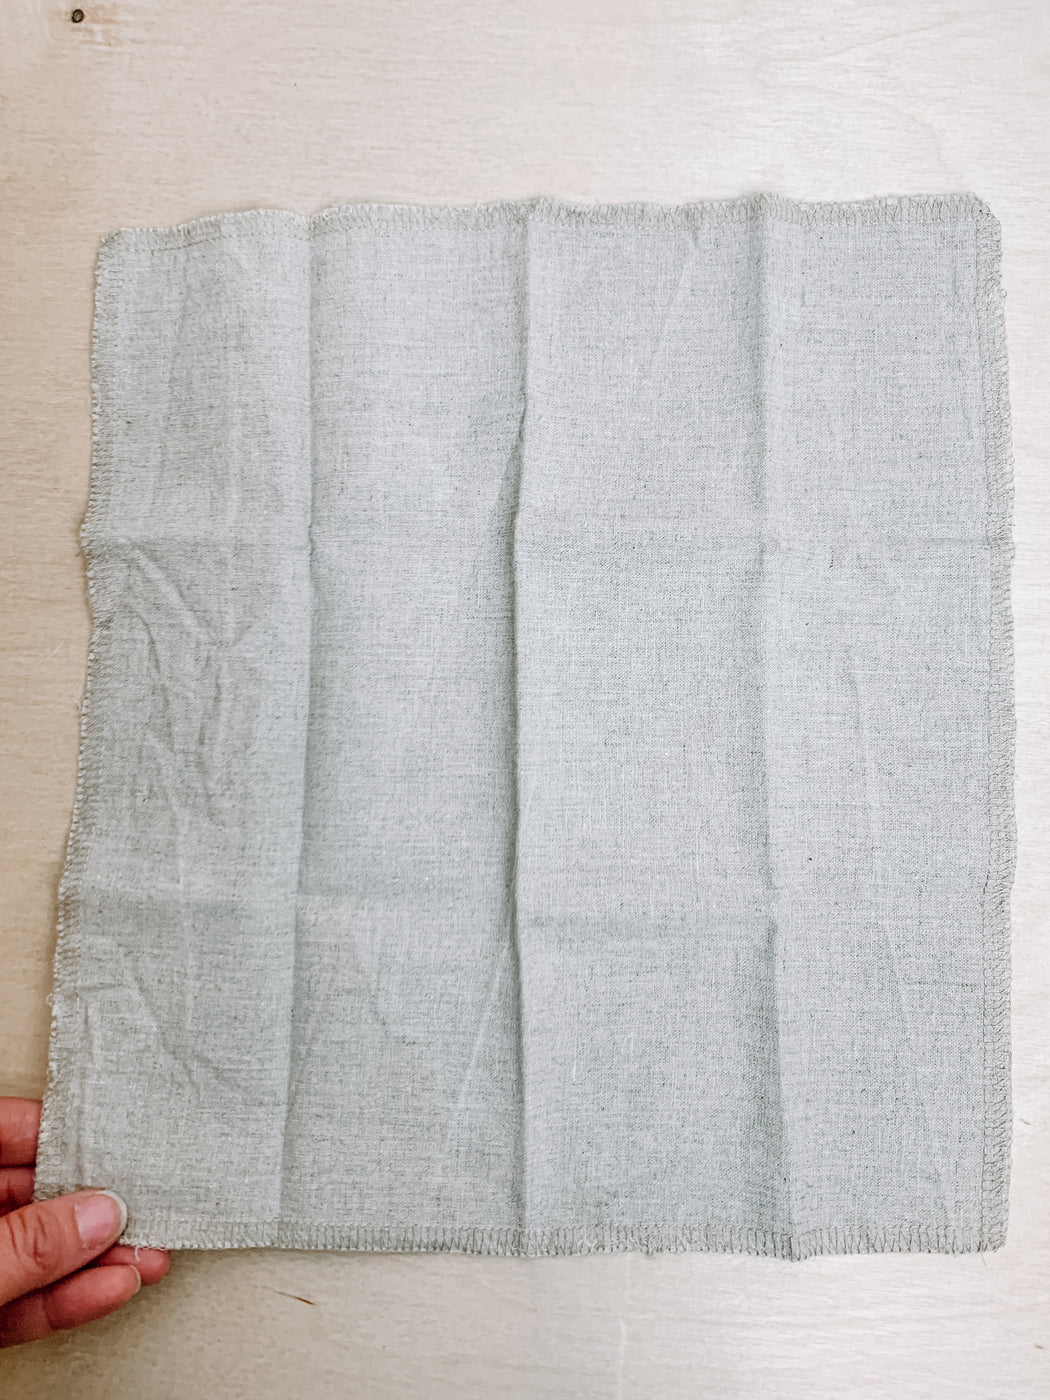 Lore General- Linen Face Cloth (2 sizes)